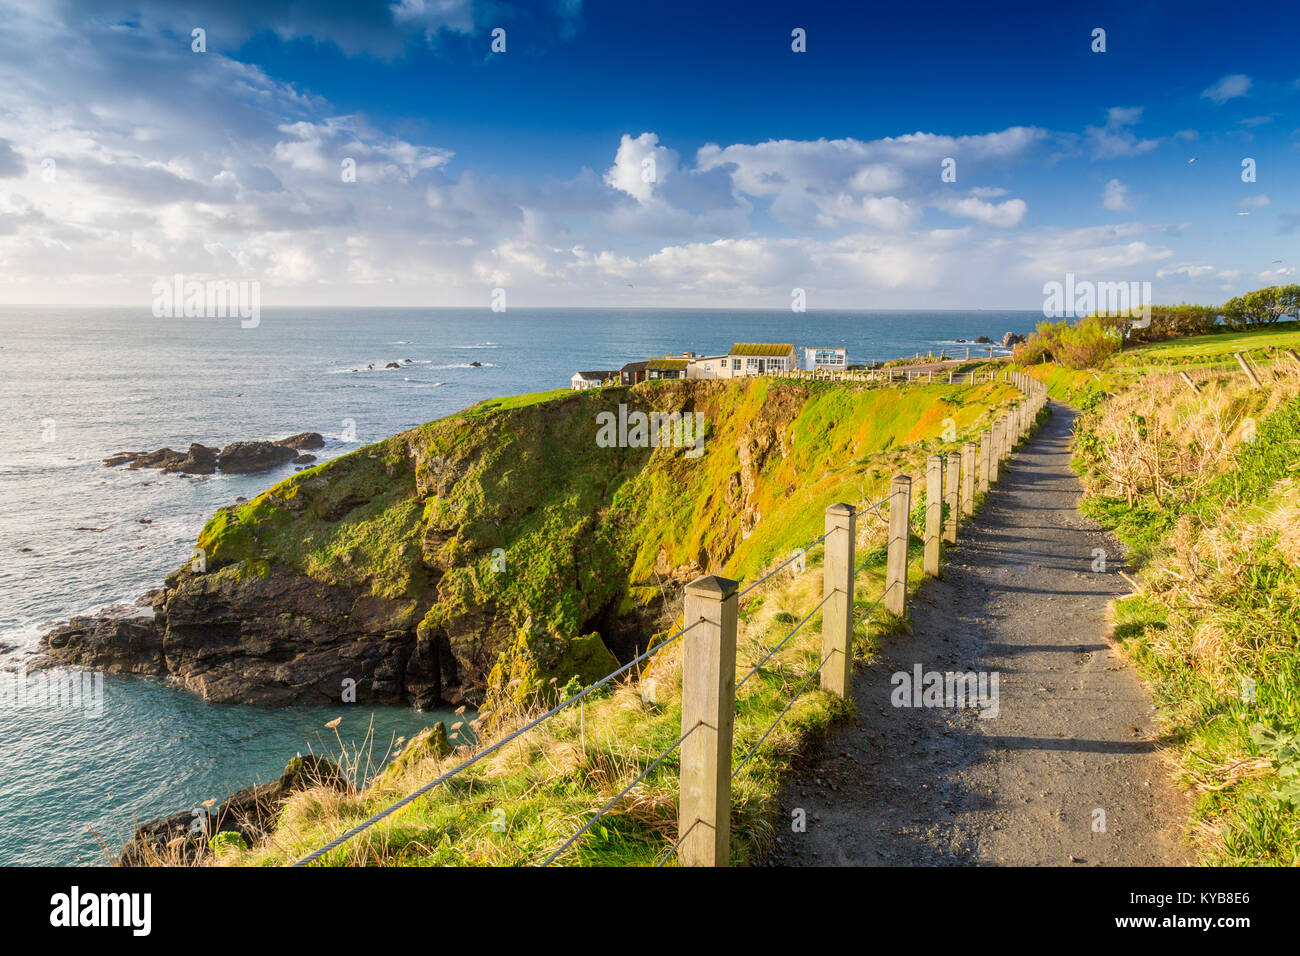 The South West Coast long distance footpath follows the cliffs close to Lizard Point in winter sunshine, Cornwall, - Stock Image